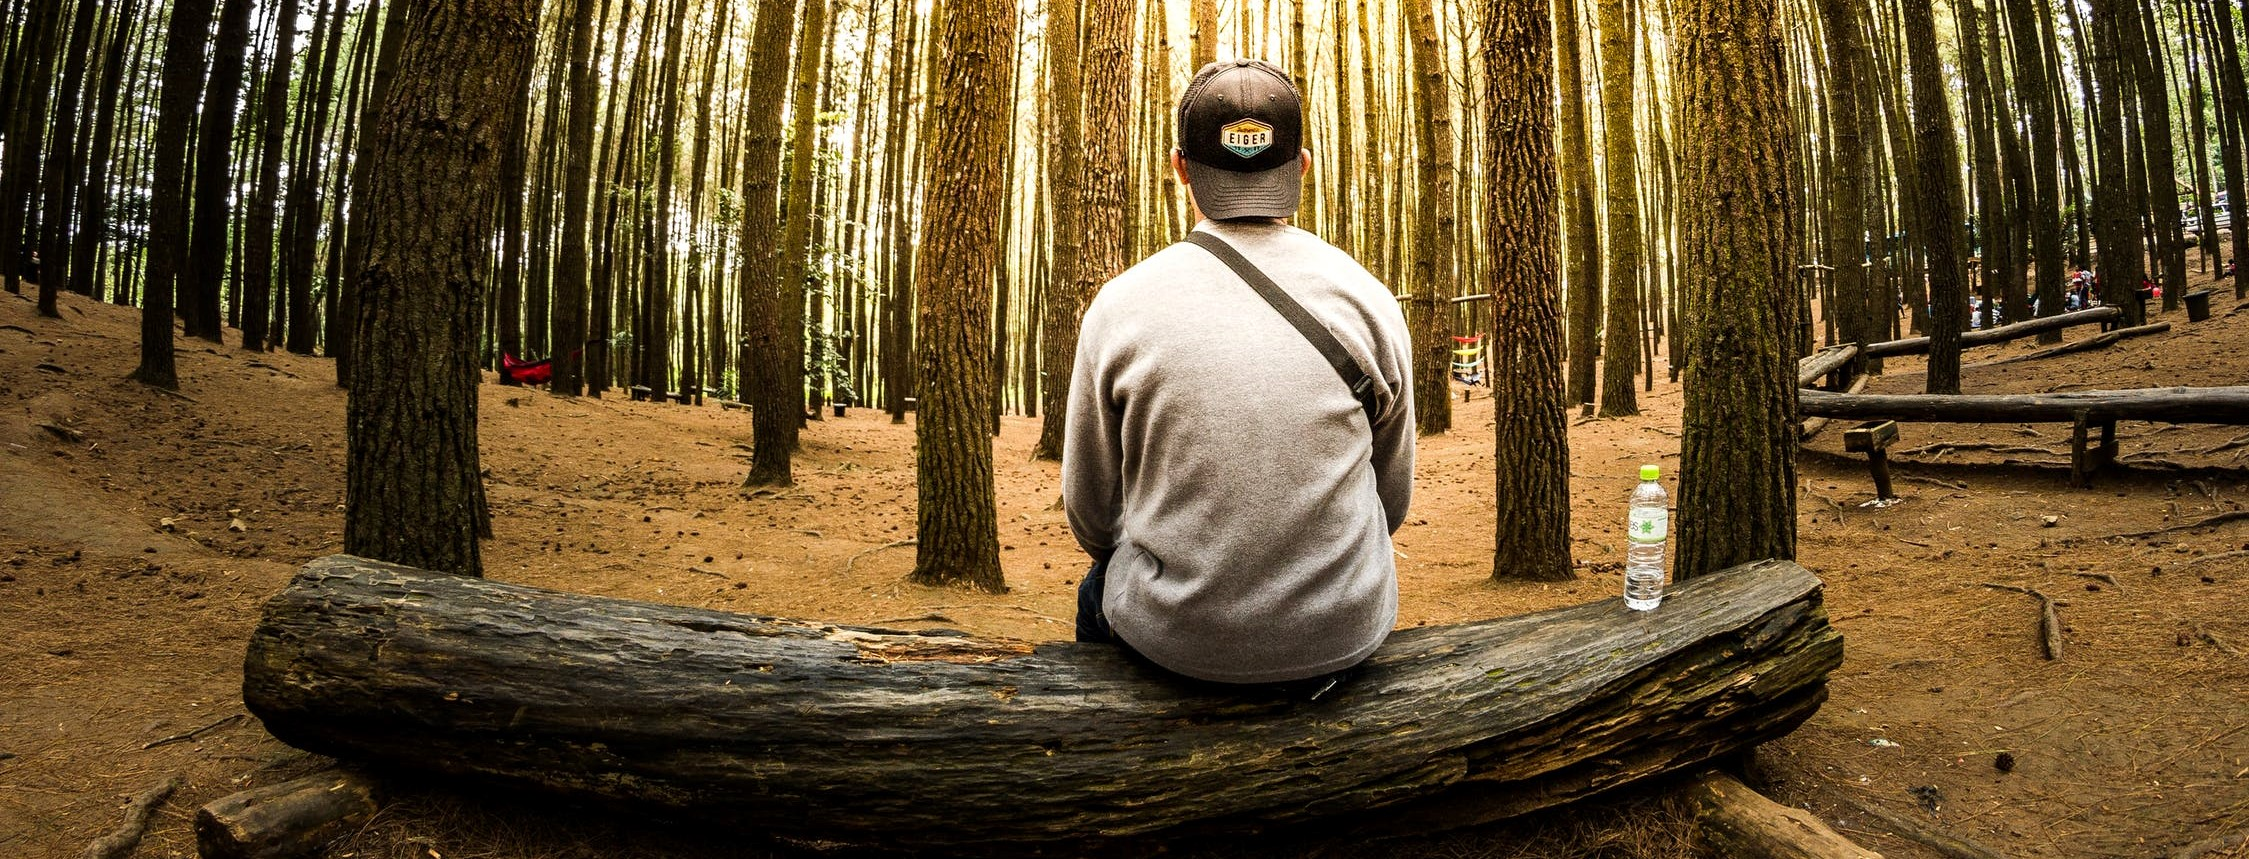 man sitting on log in the forest